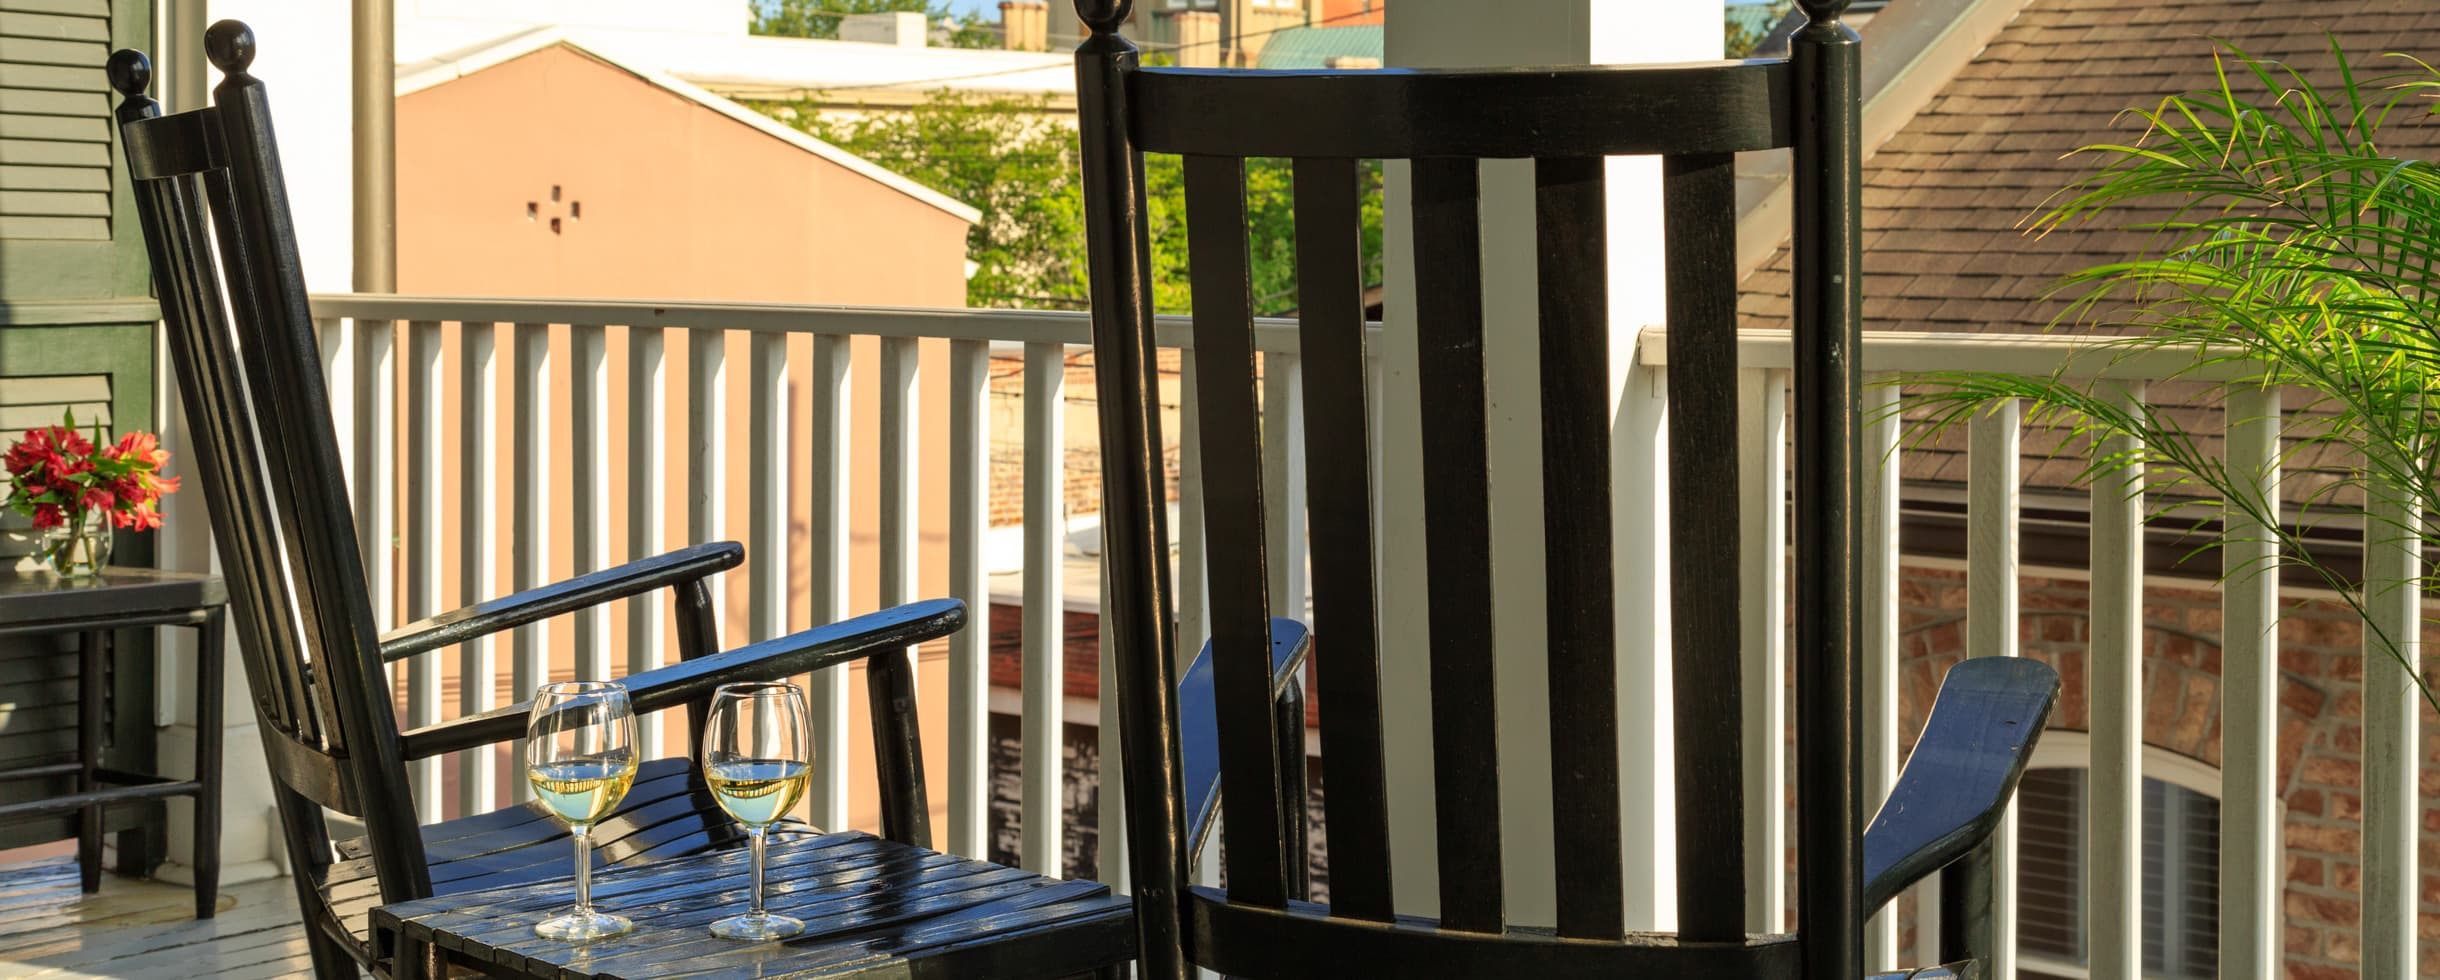 Two rocking chairs on a balcony overlooking Savannah, GA